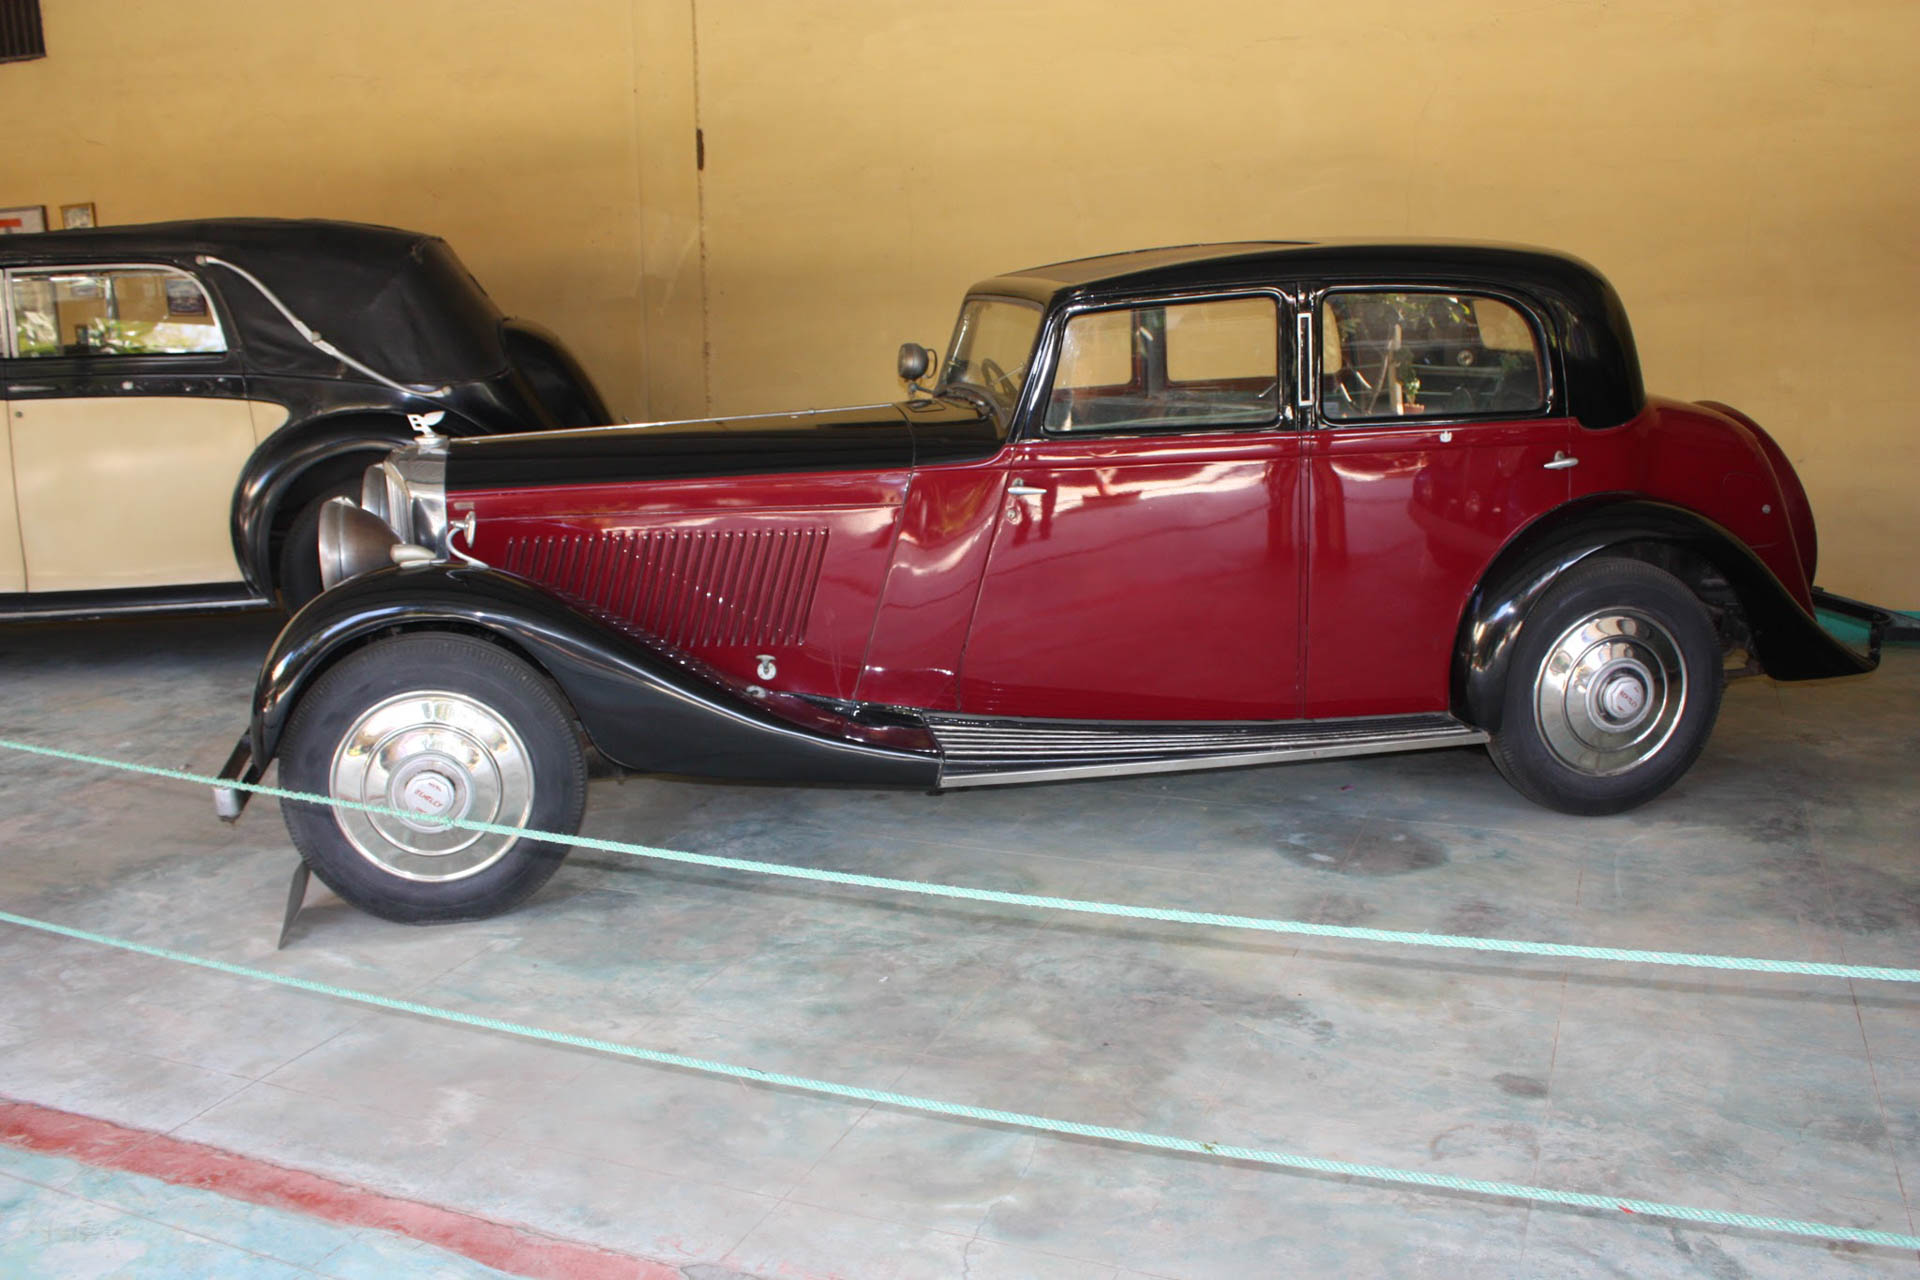 File:Bentley from Auto World.jpg - Wikimedia Commons